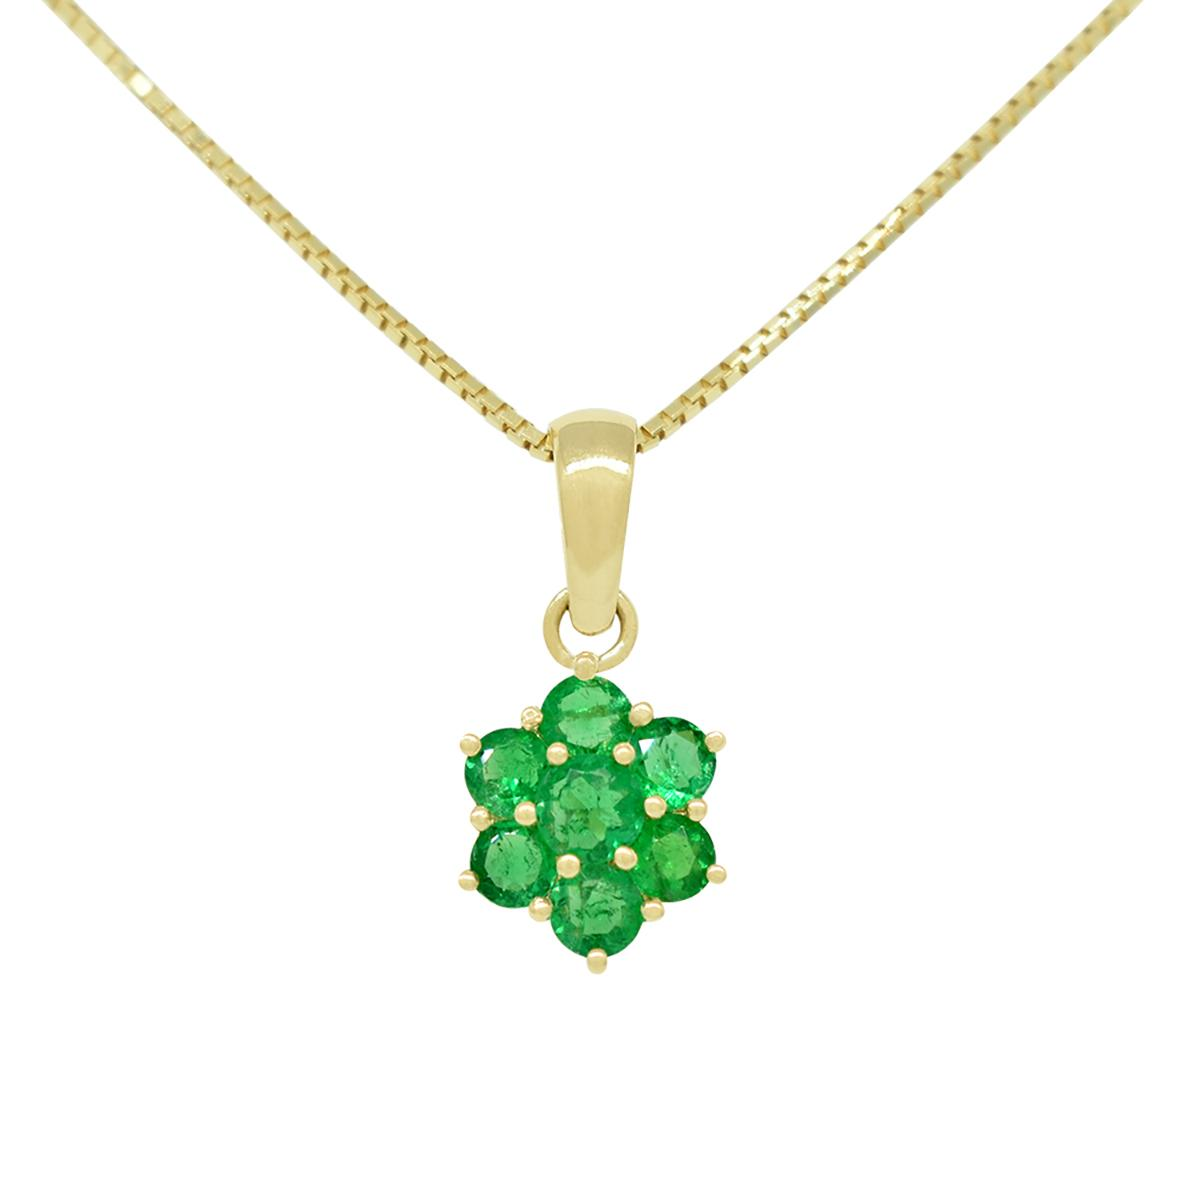 flower-design-emerald-pendant-in-18k-yellow-gold-with-7-round-emeralds